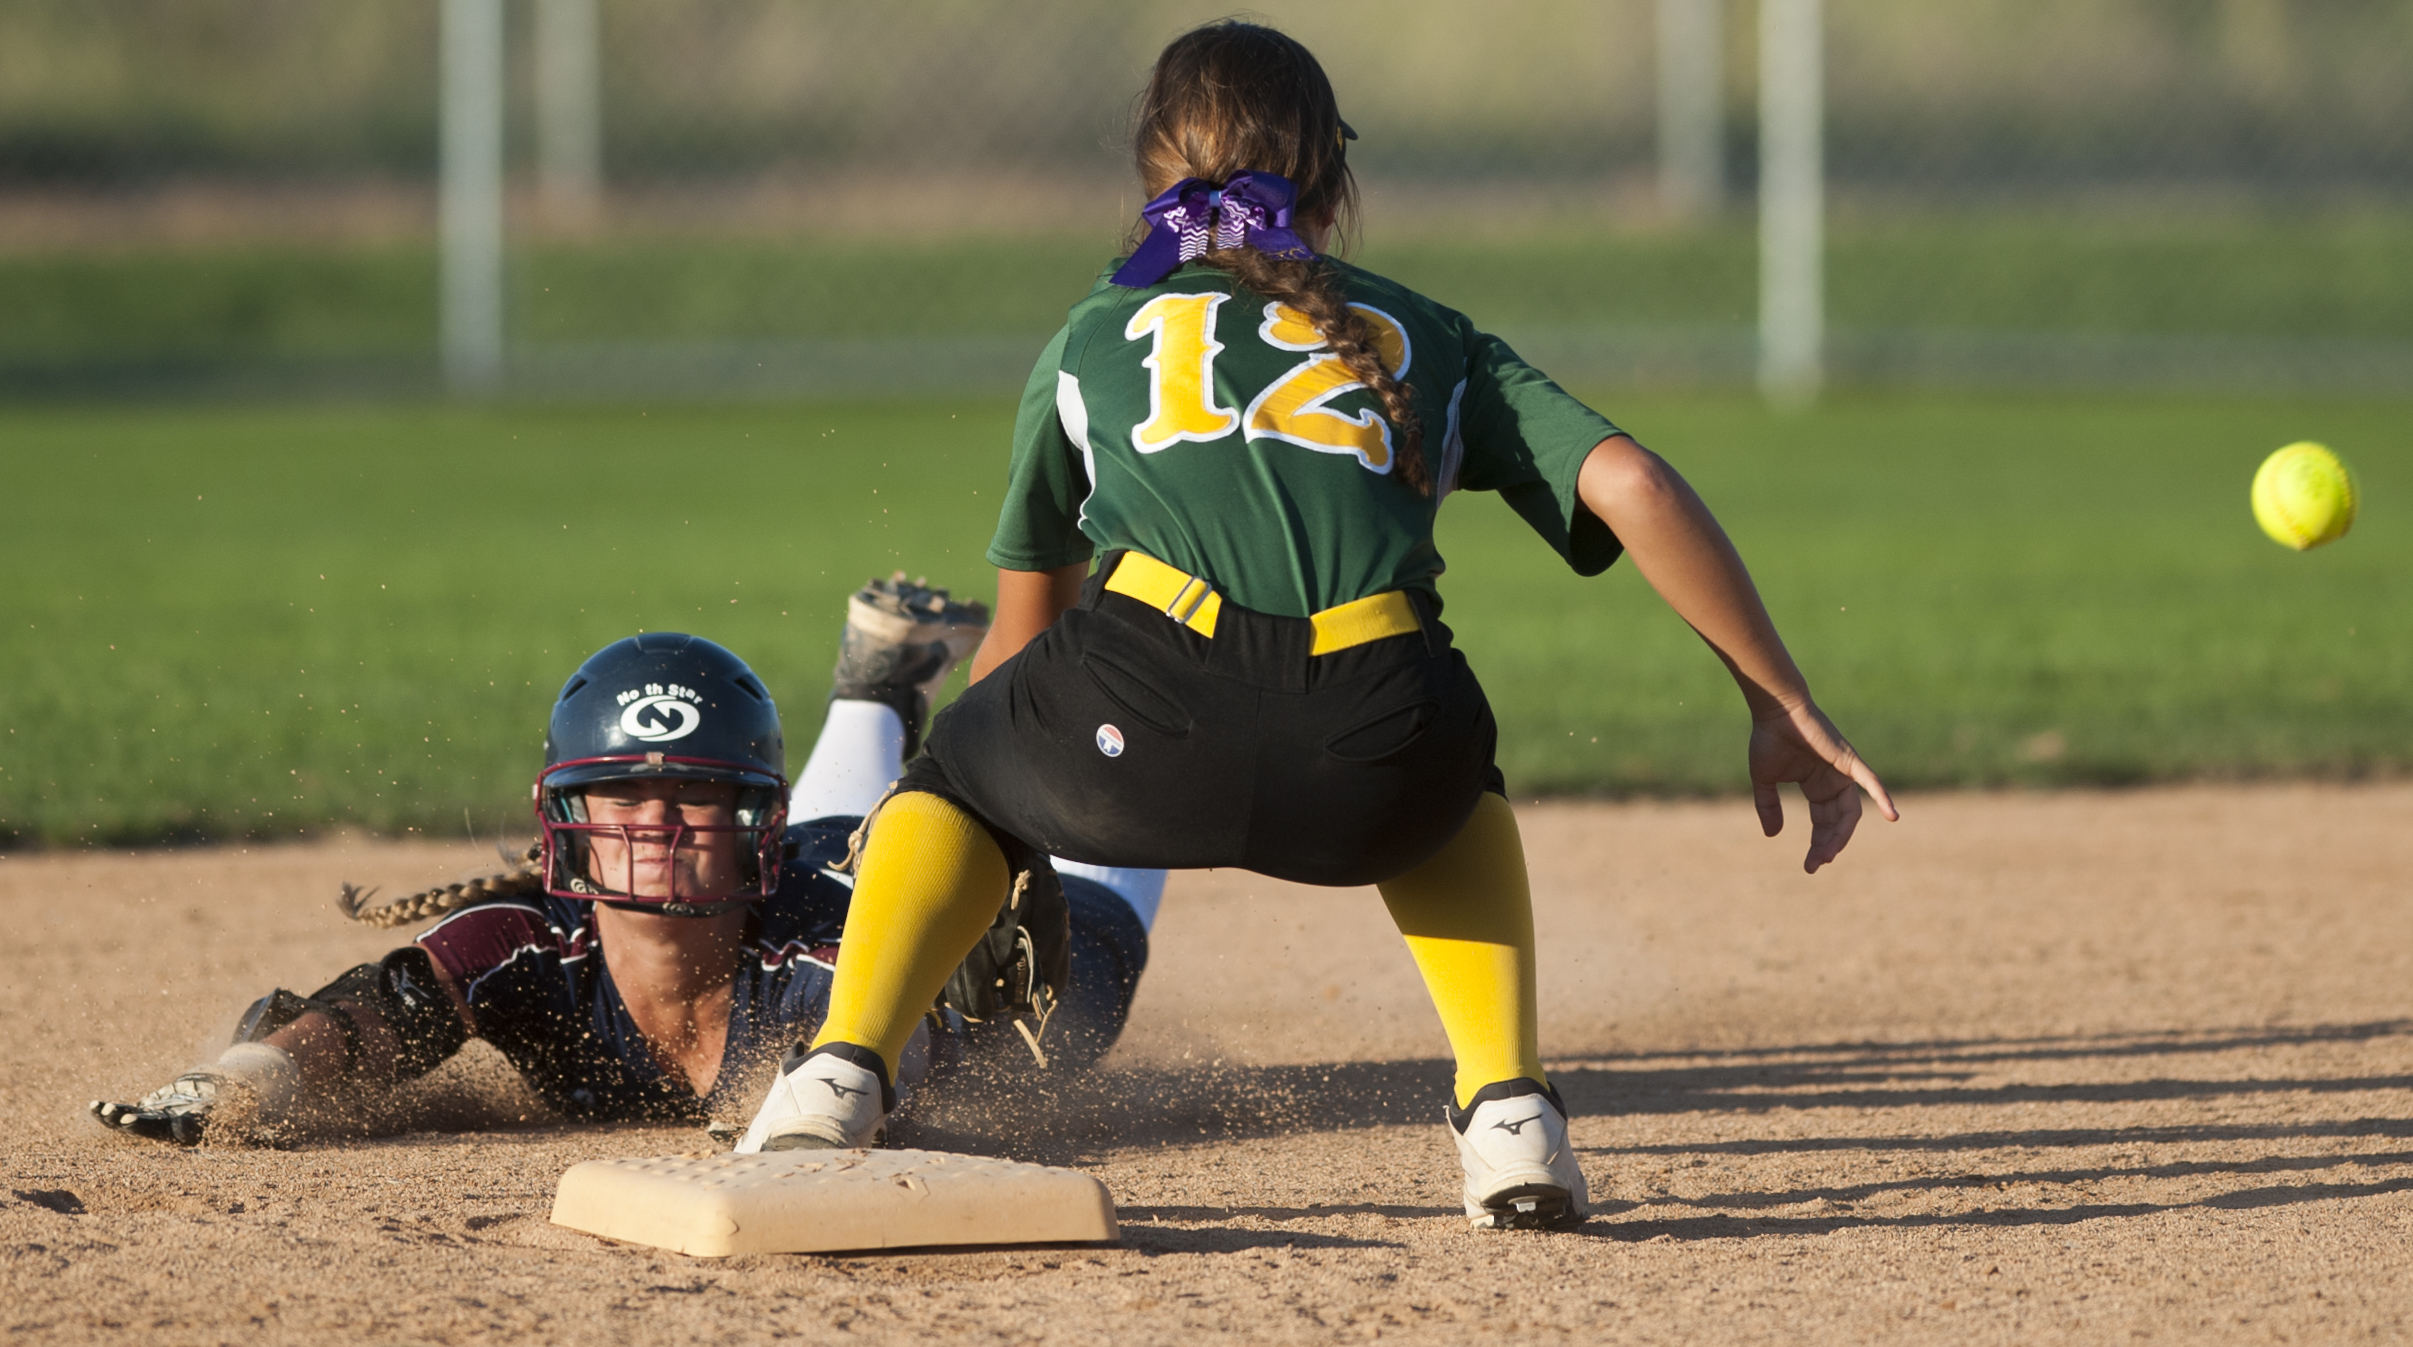 Following two errors during the play North Star's Elaina Mayer successfully slides into second base on a bunt before Pius X's MacKenzie Helman (12) can make the tag in the fifth inning of action Monday Sept. 21, 2015 at Doris Bair Softball Complex in Lincoln. Pius X shut out North Star 11-0.